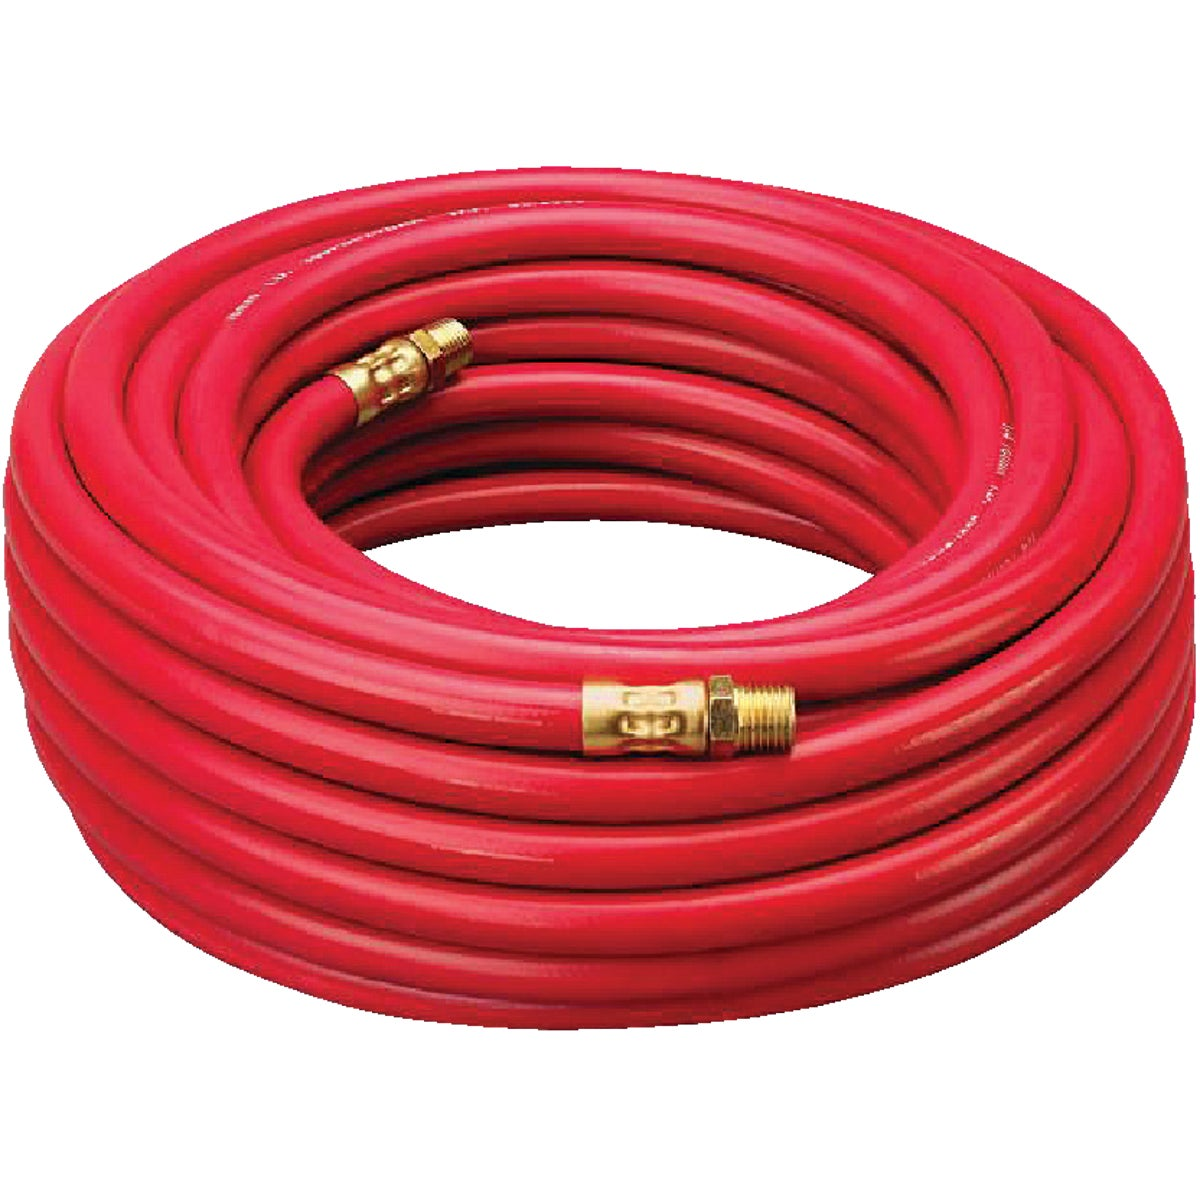 "1/4""X50' RUBBER AIR HOSE"